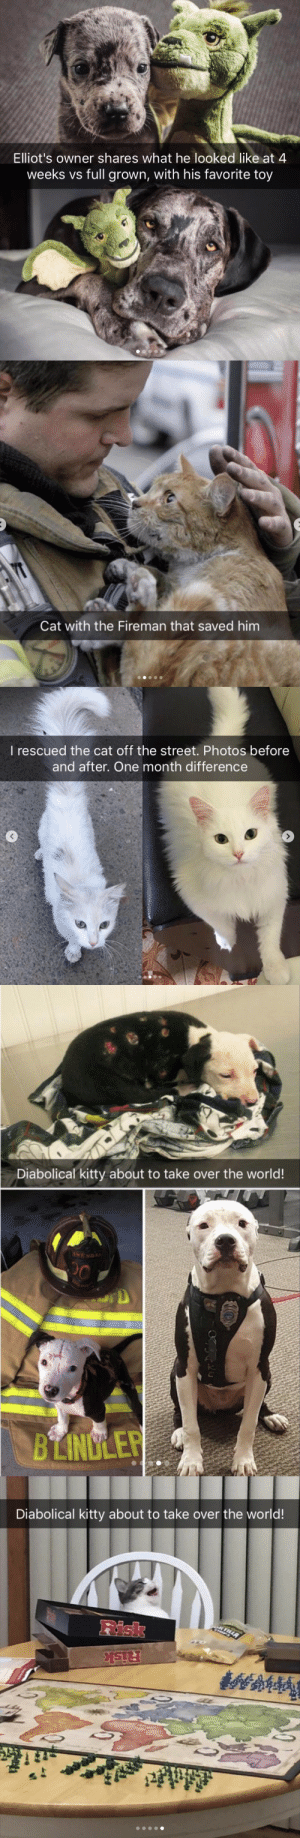 babyanimalgifs: Animal snaps  (DM for credits) (#1 @mygiantadventures) : Elliot's owner shares what he looked like at 4  weeks vs full grown, with his favorite toy   Cat with the Fireman that saved him   I rescued the cat off the street. Photos before  and after. One month difference   Diabolical kitty about to take over the world!  BLINULEP   Diabolical kitty about to take over the world!  Risk babyanimalgifs: Animal snaps  (DM for credits) (#1 @mygiantadventures)